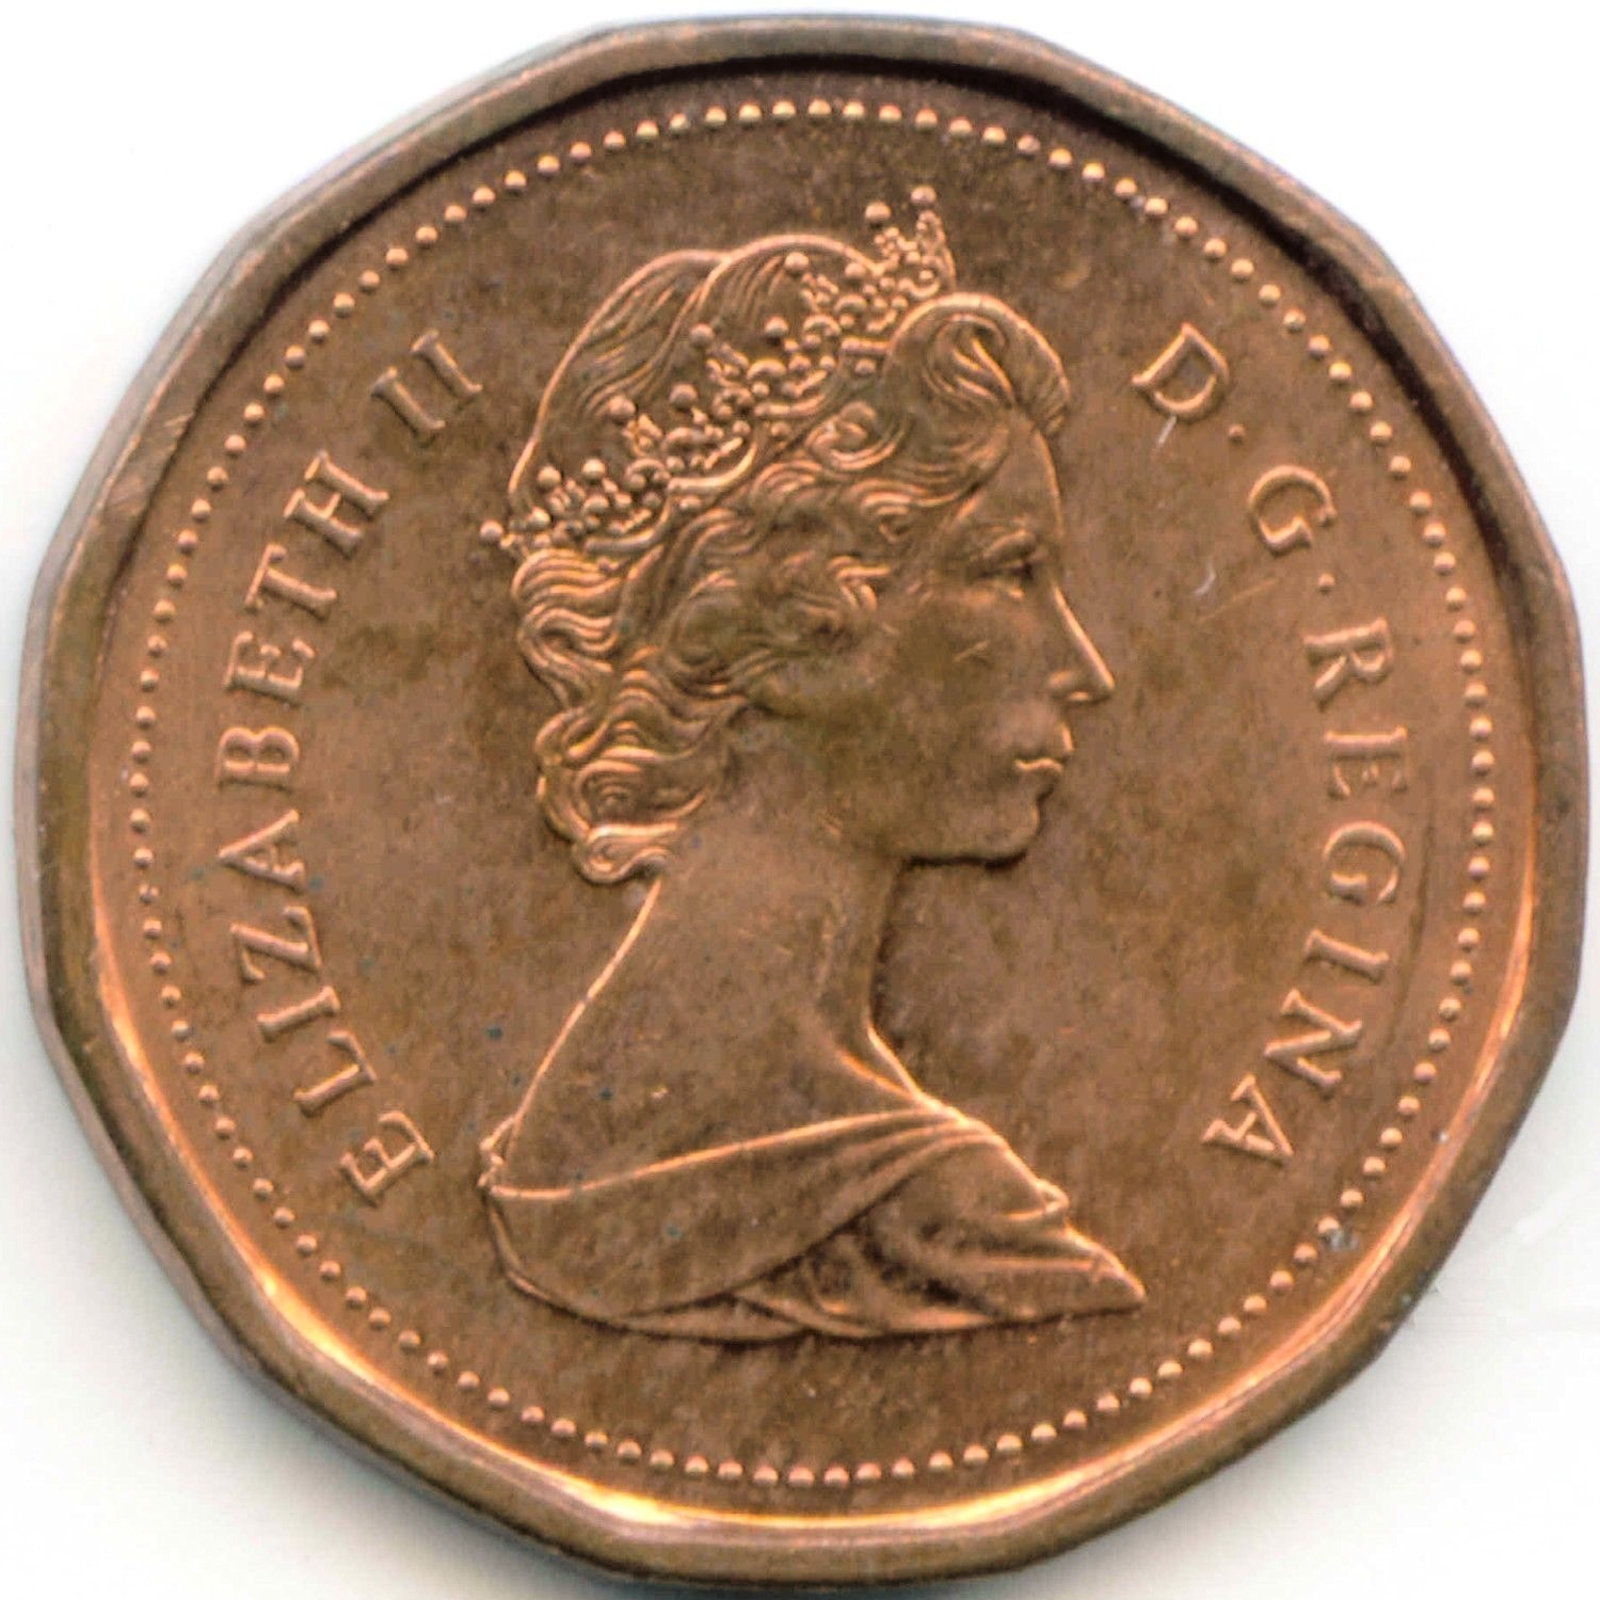 Canadian 1 Cent Obverse Design Evolution